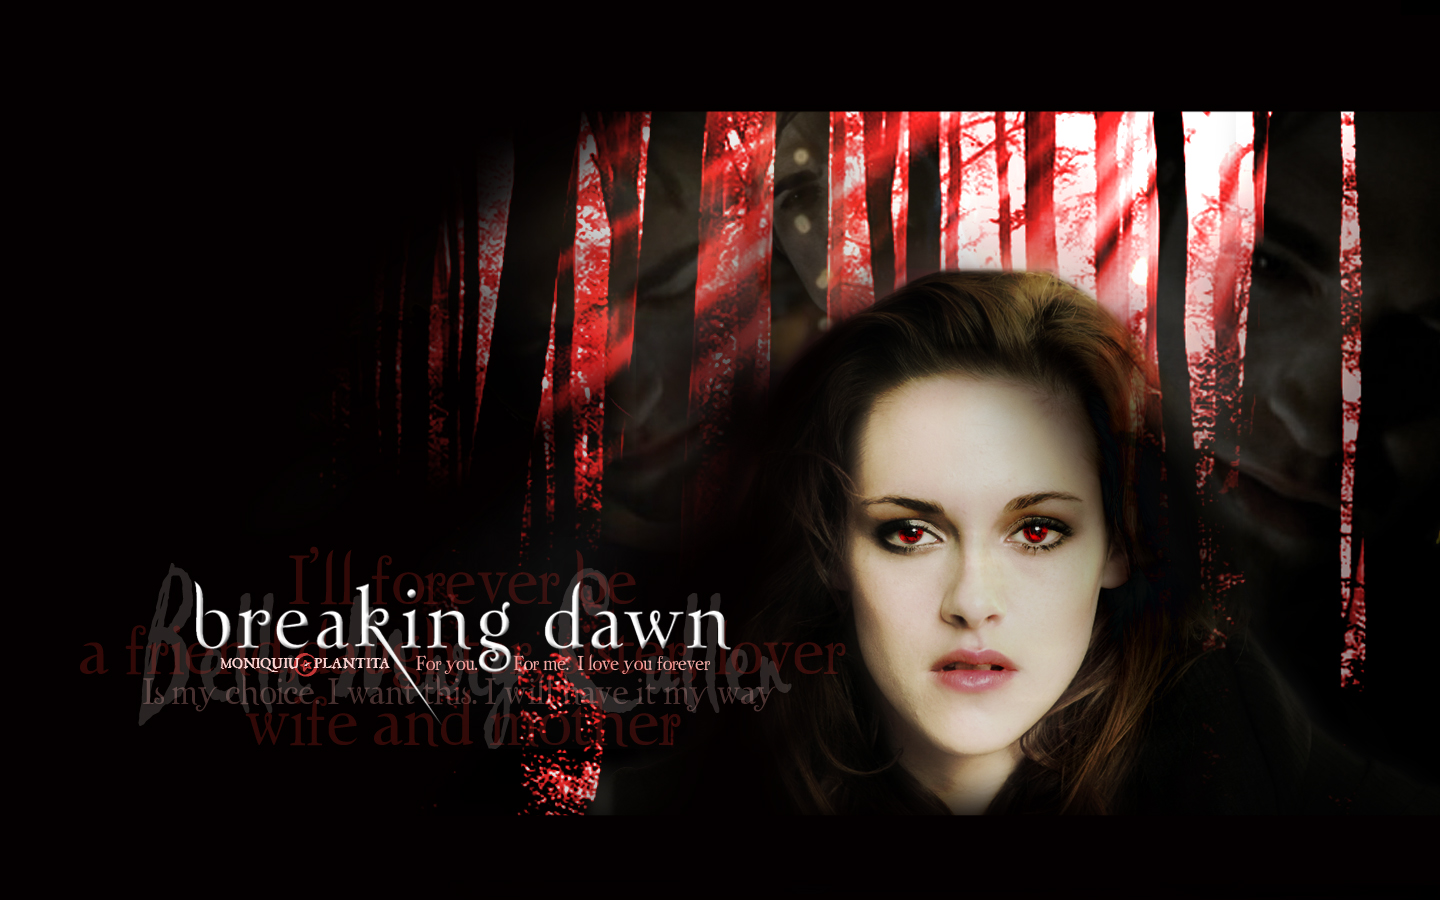 http://fc09.deviantart.com/fs44/f/2009/095/b/4/Breaking_Dawn___Bella_Cullen_by_Moniquiu.jpg